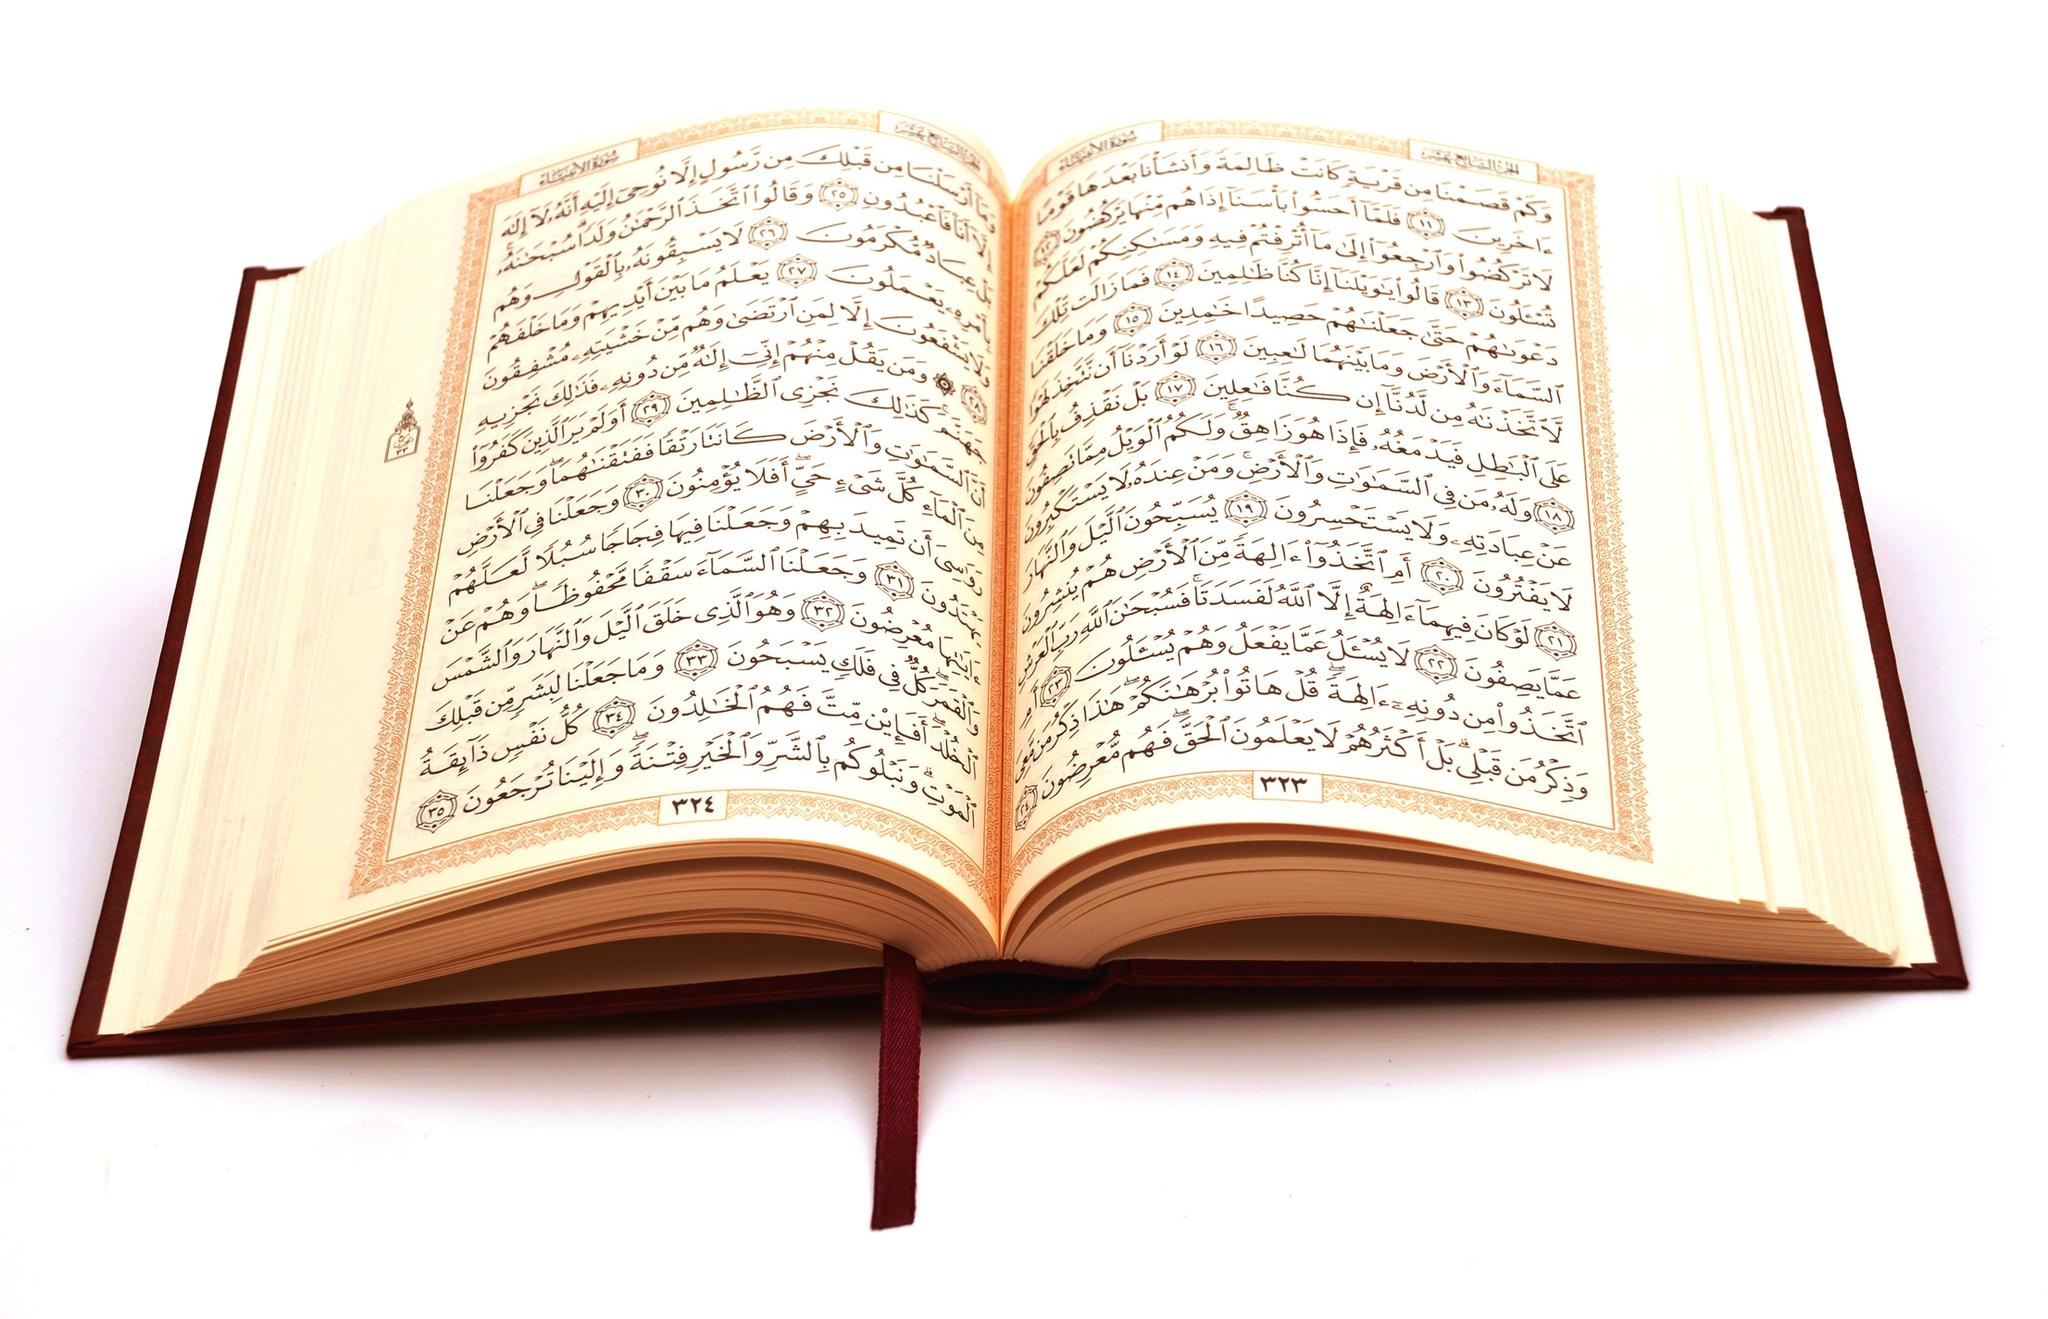 Compilation of the Holy Quran into a text – The Muslim Times